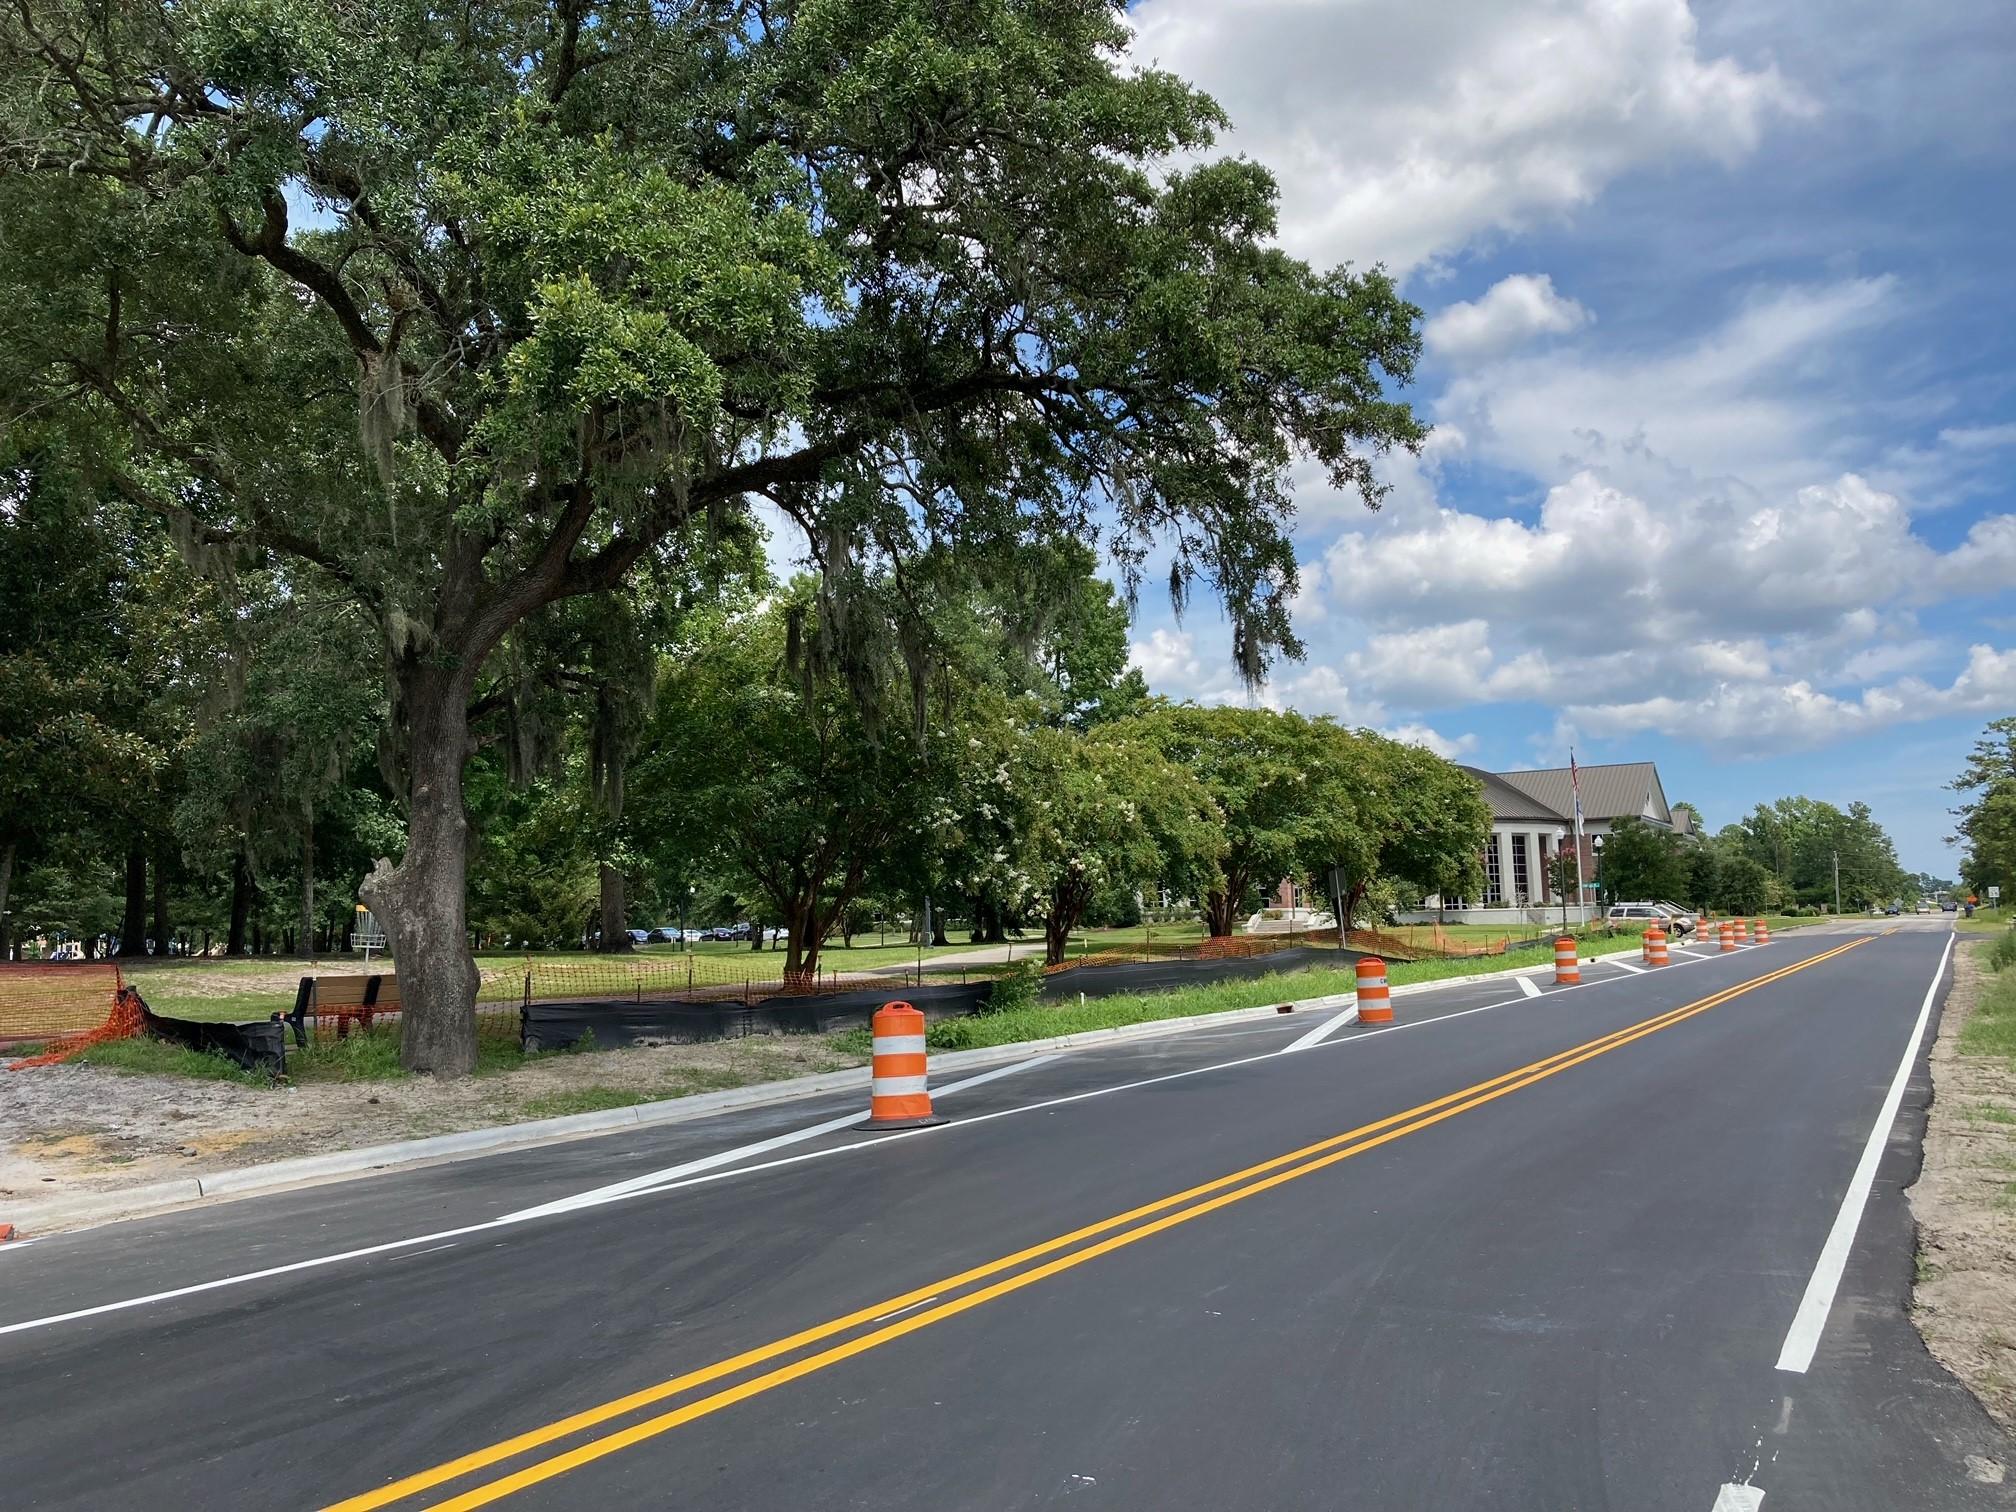 Ribbon Cutting Celebration Planned for Old Fayetteville Road Multi-Use Path